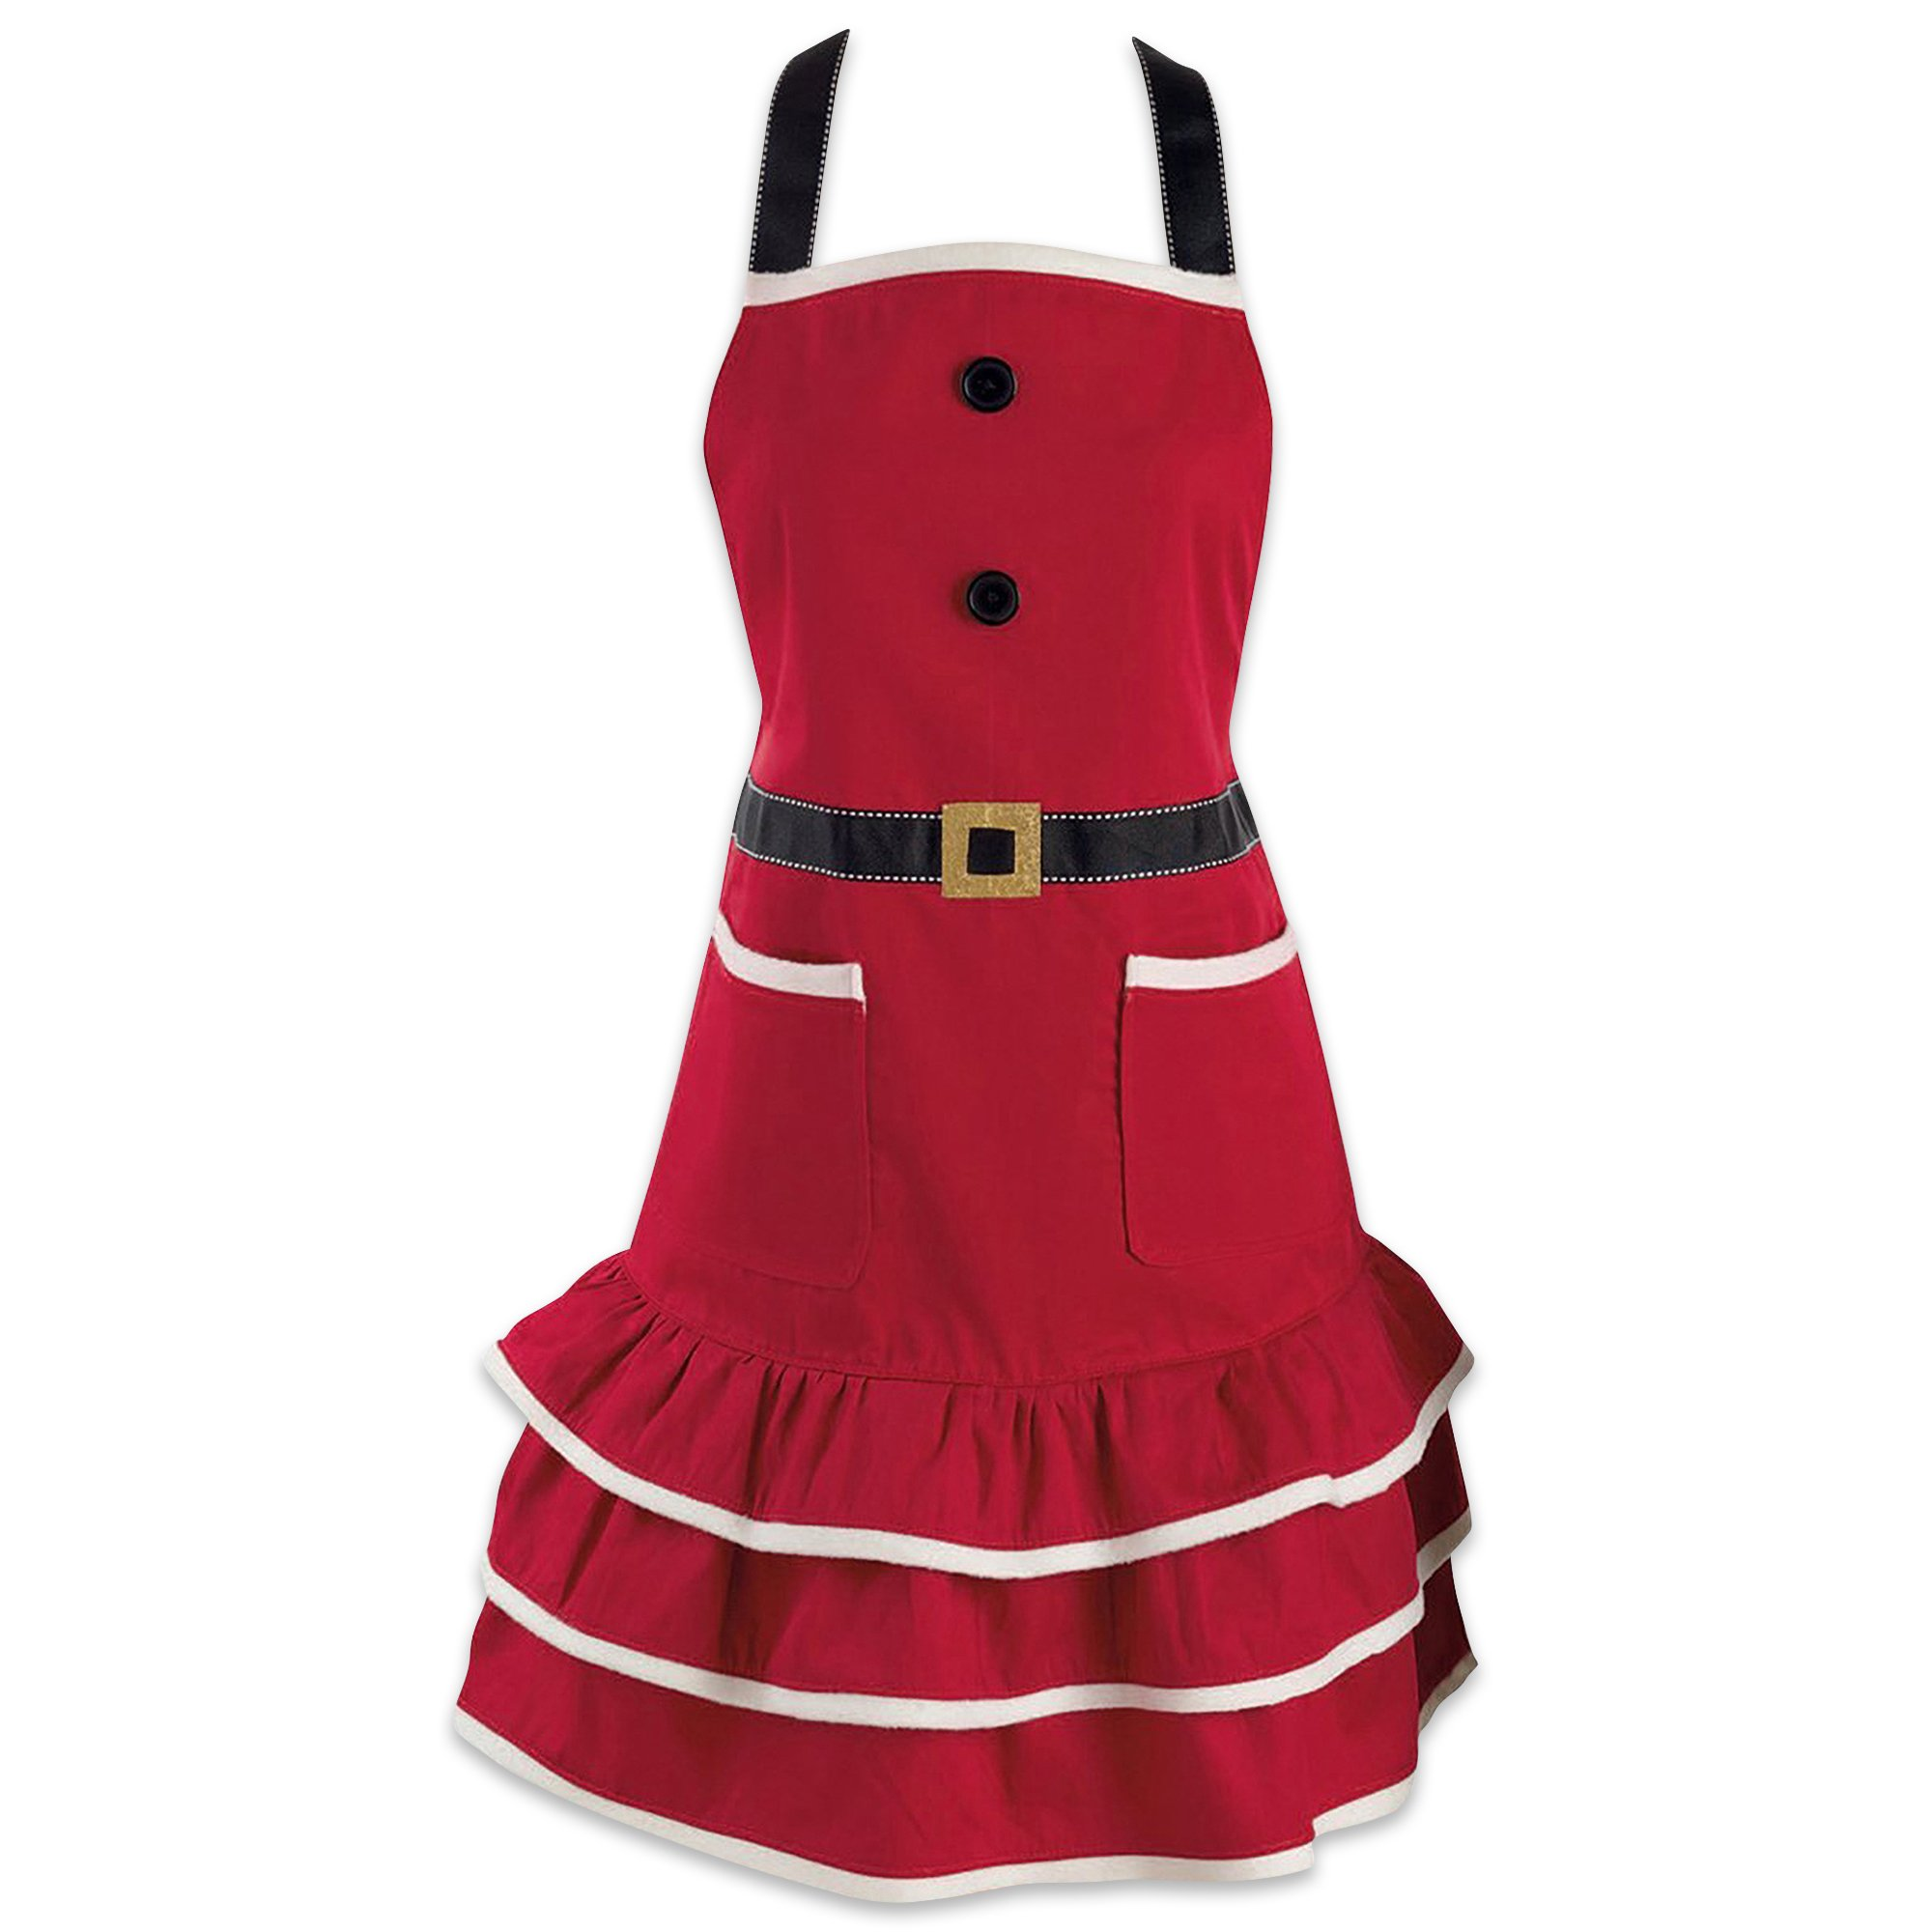 DII Cotton Chistmas Kitchen Apron with Pocket and Extra Long Ties, 29.5 x 24, Cute Women Ruffle Apron for Holidays, Hostee and Housewarming Gift-Mrs. Claus by DII (Image #1)